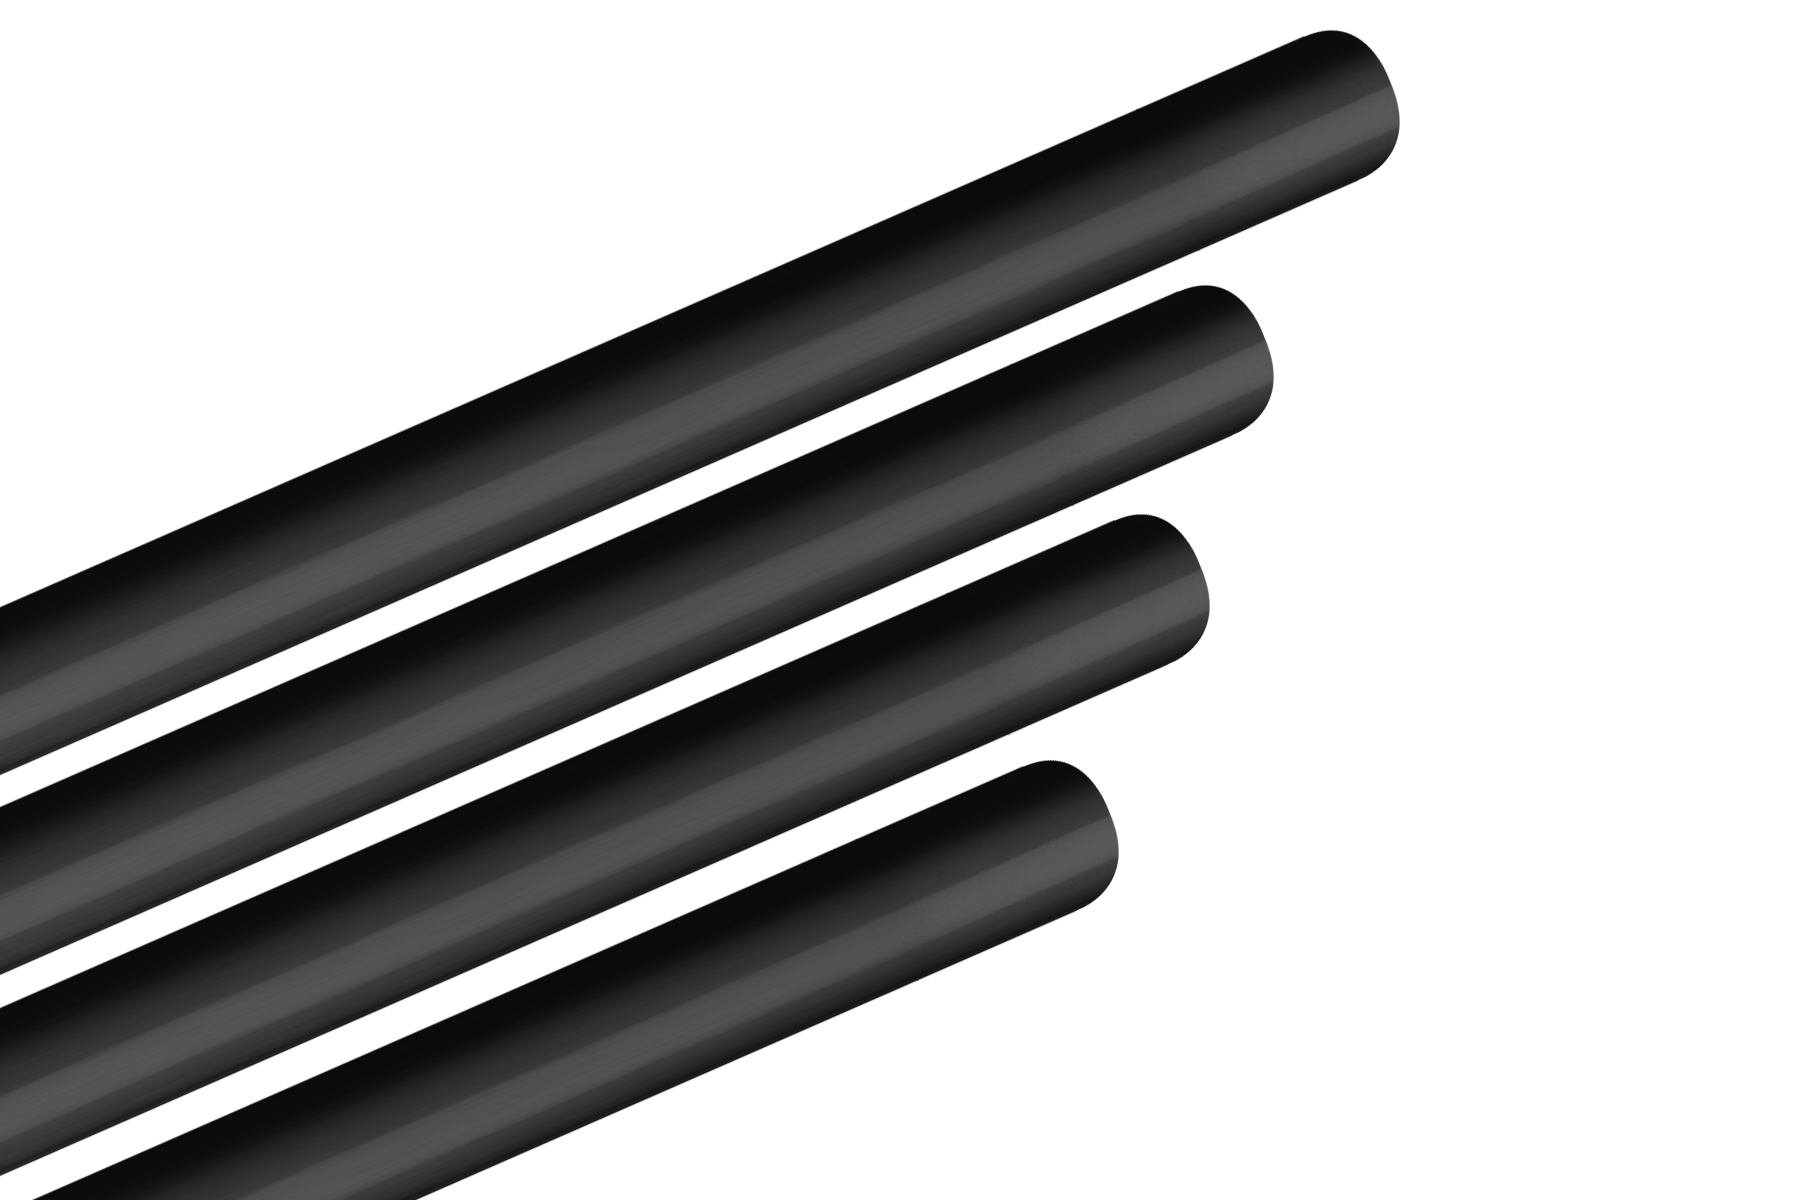 Aluminum piping comes in a variety of colors, such as black